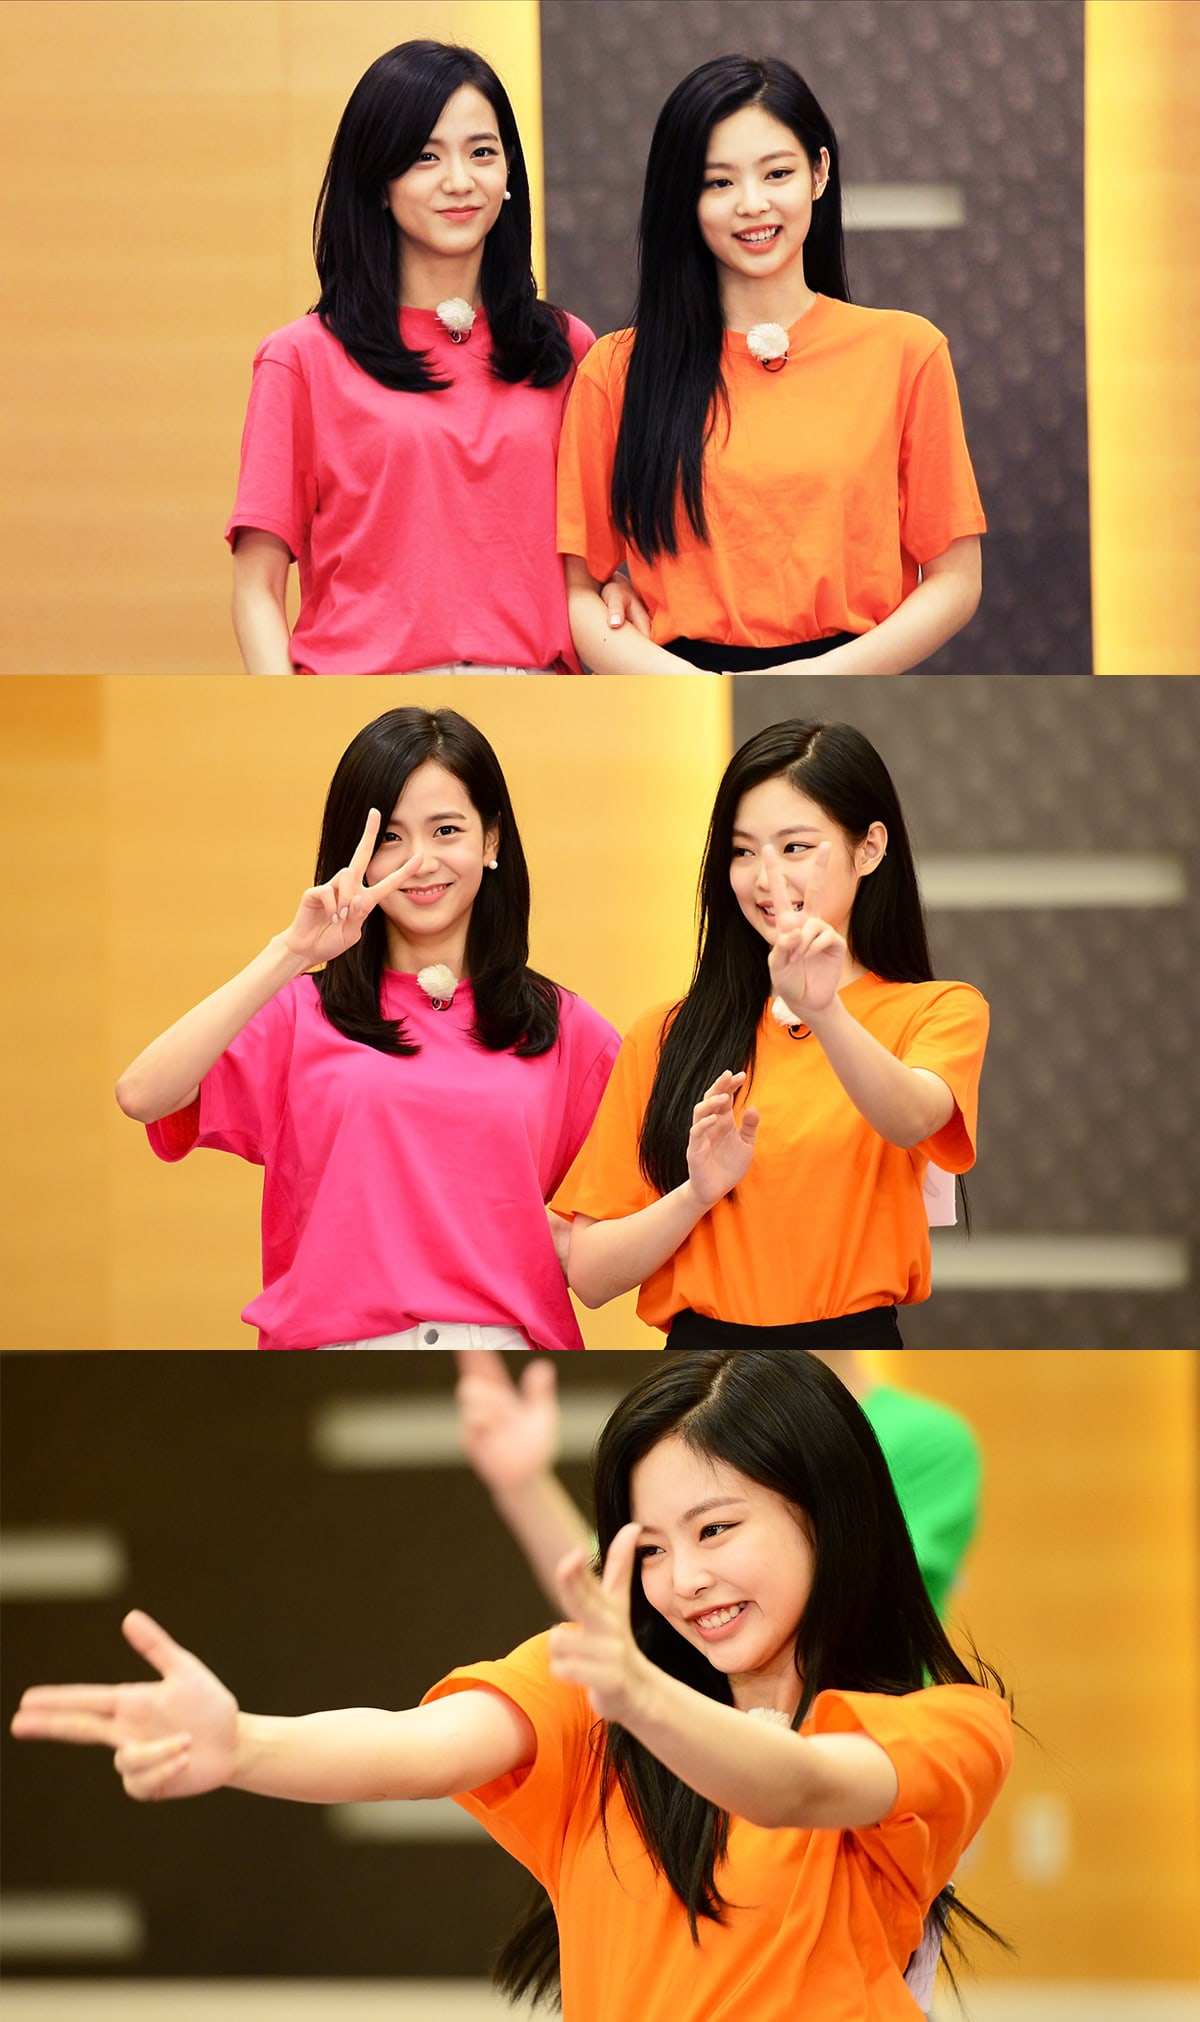 BLACKPINK's Jisoo And Jennie Are Adorable In New Stills From